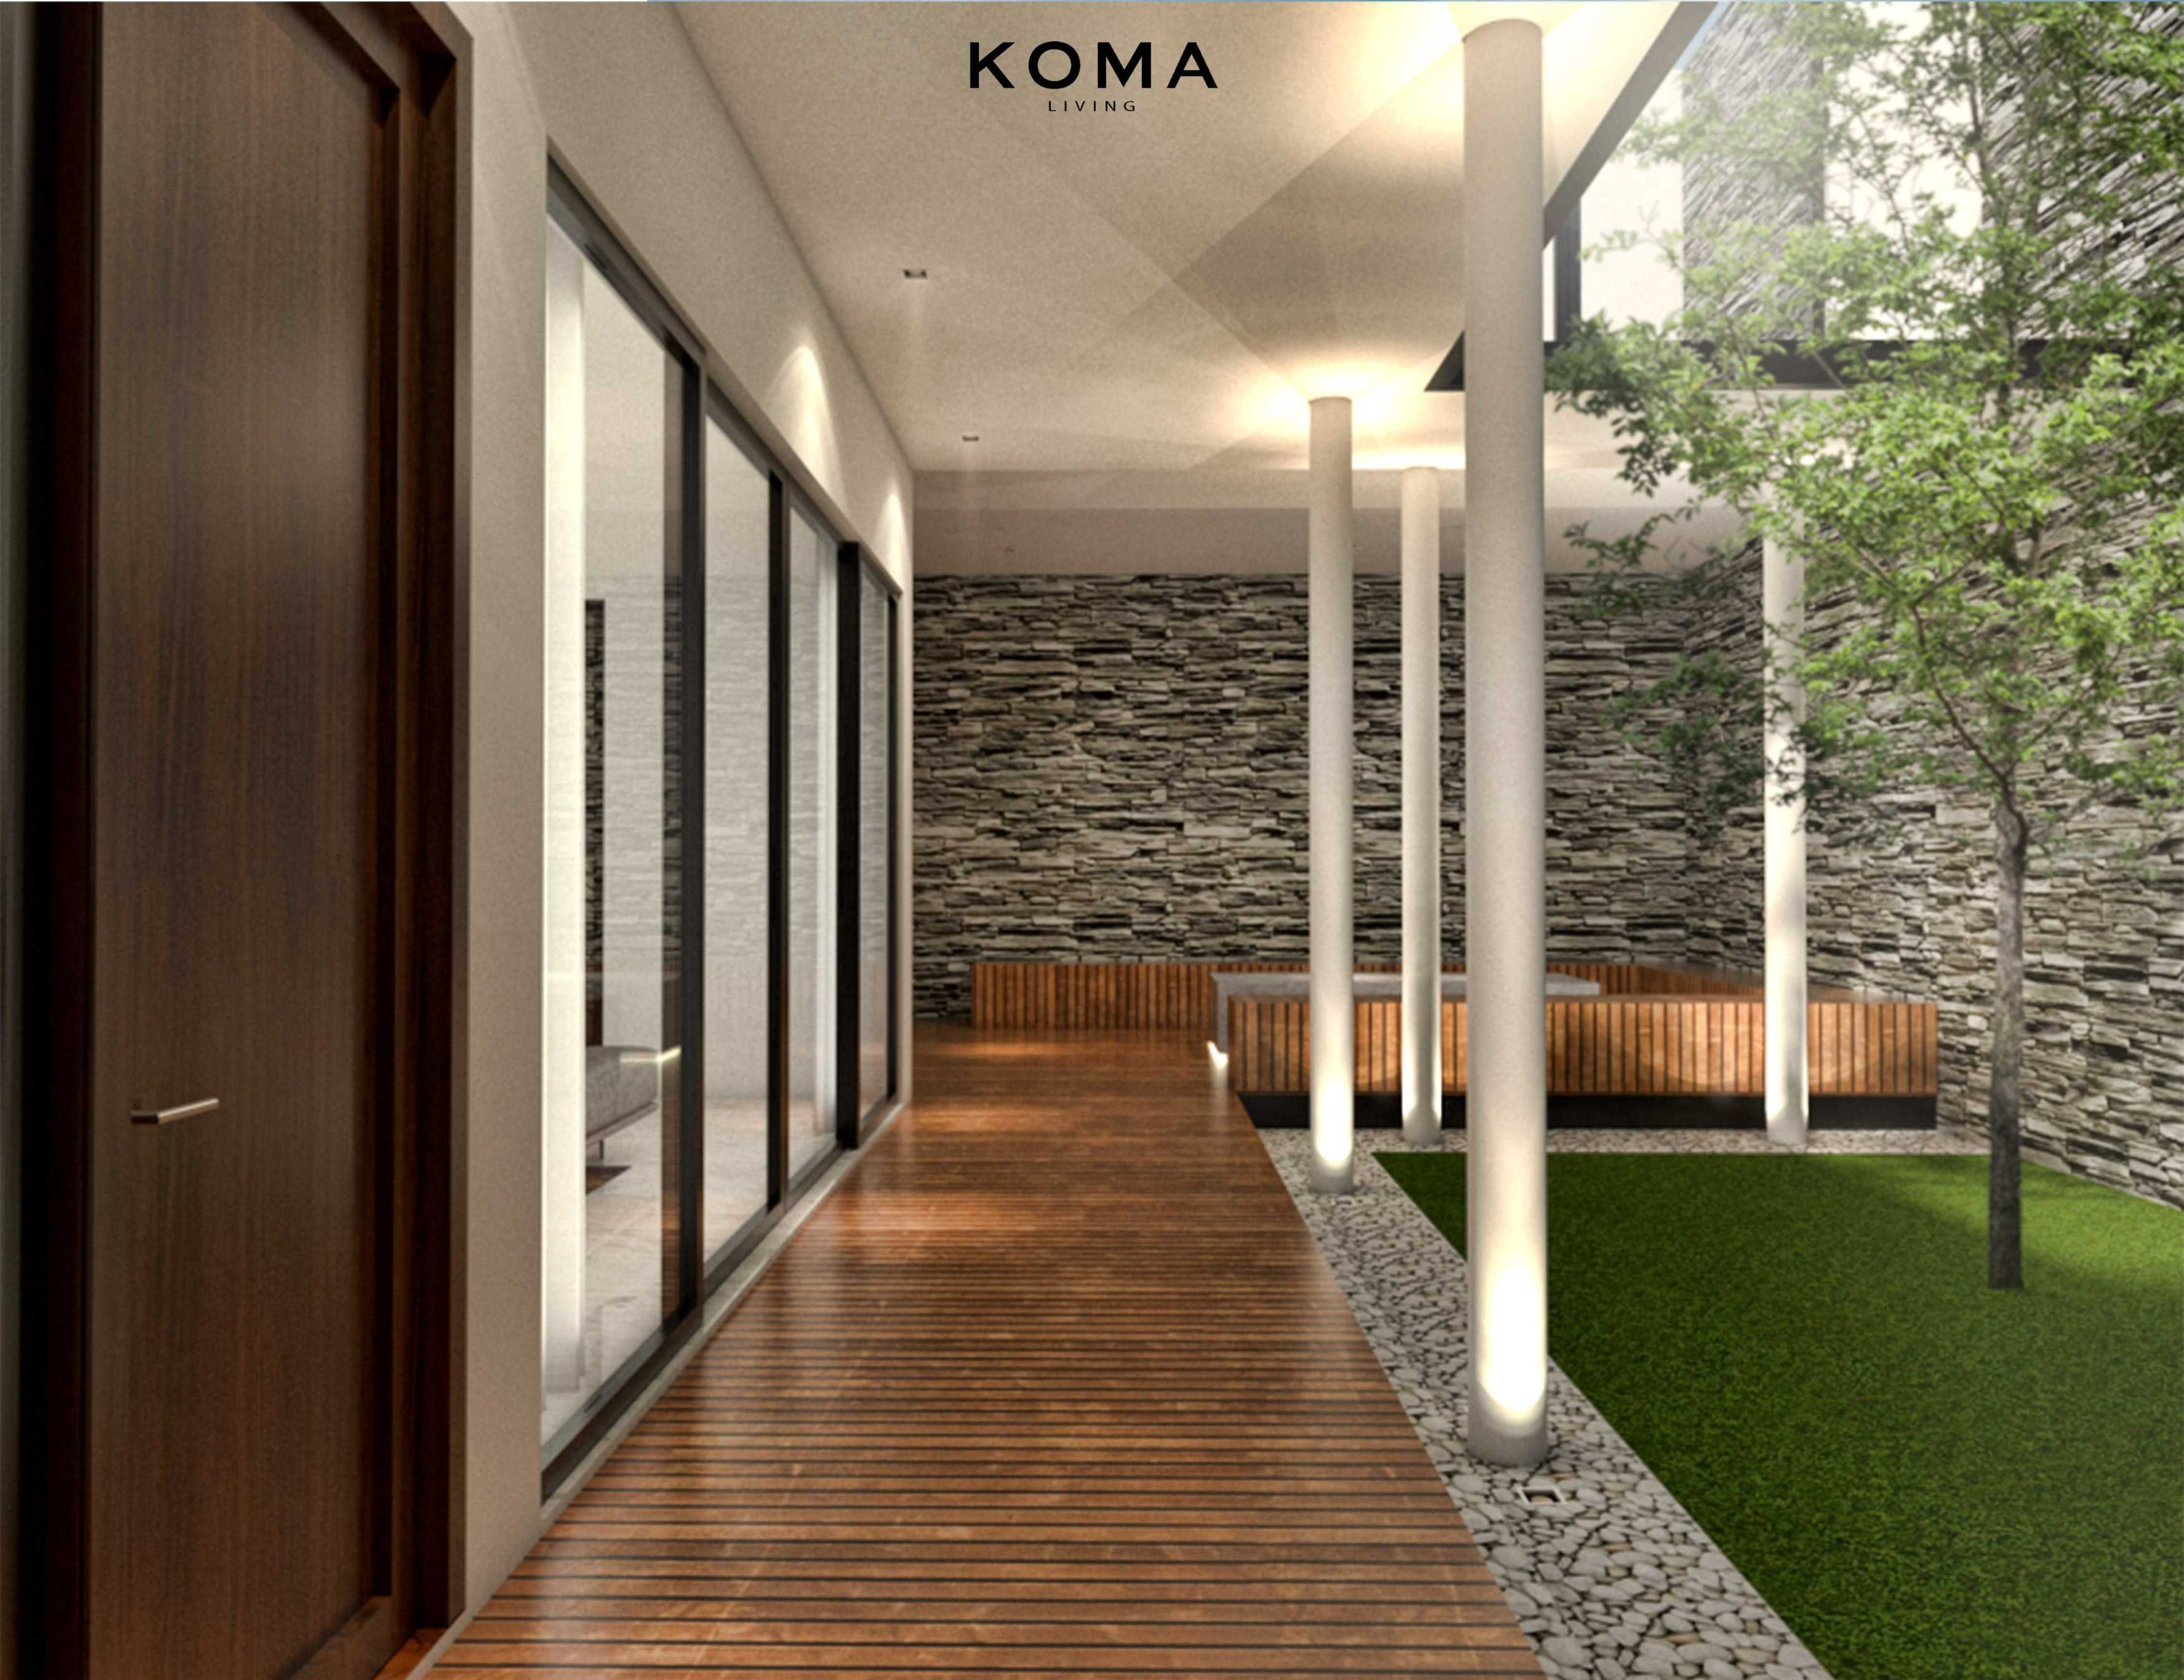 Koma Bs House Jl. Jalur Sutera No.17, Kunciran, Pinang, Kota Tangerang, Banten 15143, Indonesia Jl. Jalur Sutera No.17, Kunciran, Pinang, Kota Tangerang, Banten 15143, Indonesia Koma-Bs-House  Bs House Located At Alam Sutera, Tangerang, Indonesia, A Renovation From Row House Built By Alam Sutera Realty And Redesigned By Koma Architect, The Architectural Concept For The House Is Elegant And Sleek DesignWith Rich Natural Material Combined With TakingFull Advantage Of Relating To Its Natural Surroundings, MakeThis House Have AStrong Relationship Between The House And Nature. 70235